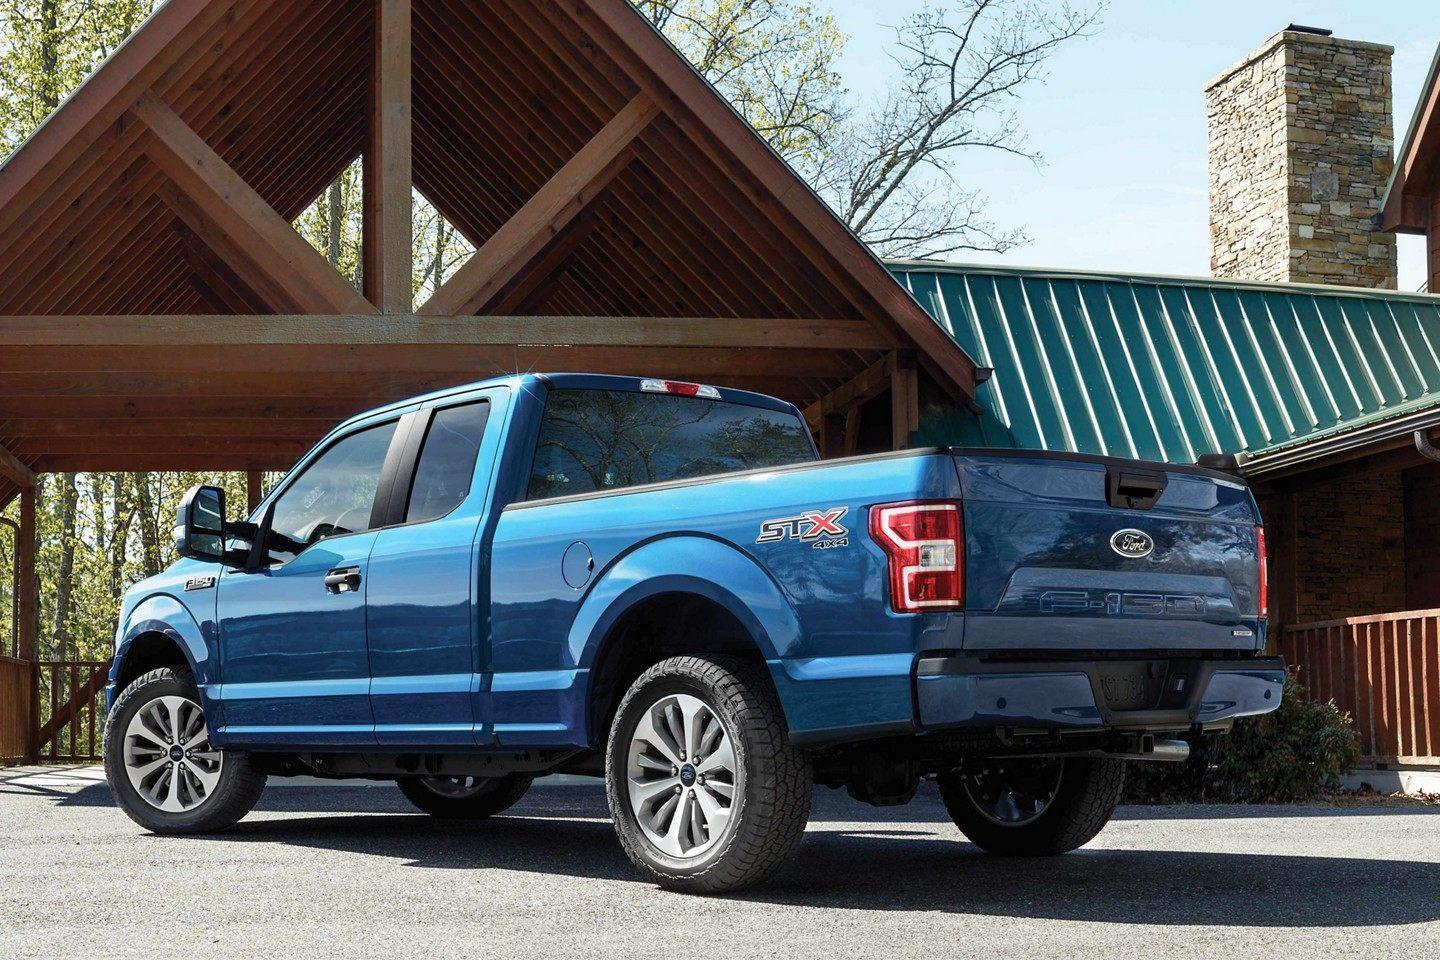 Rear 3/4 angle of Lightning blue Ford F-150 under wooden entrance